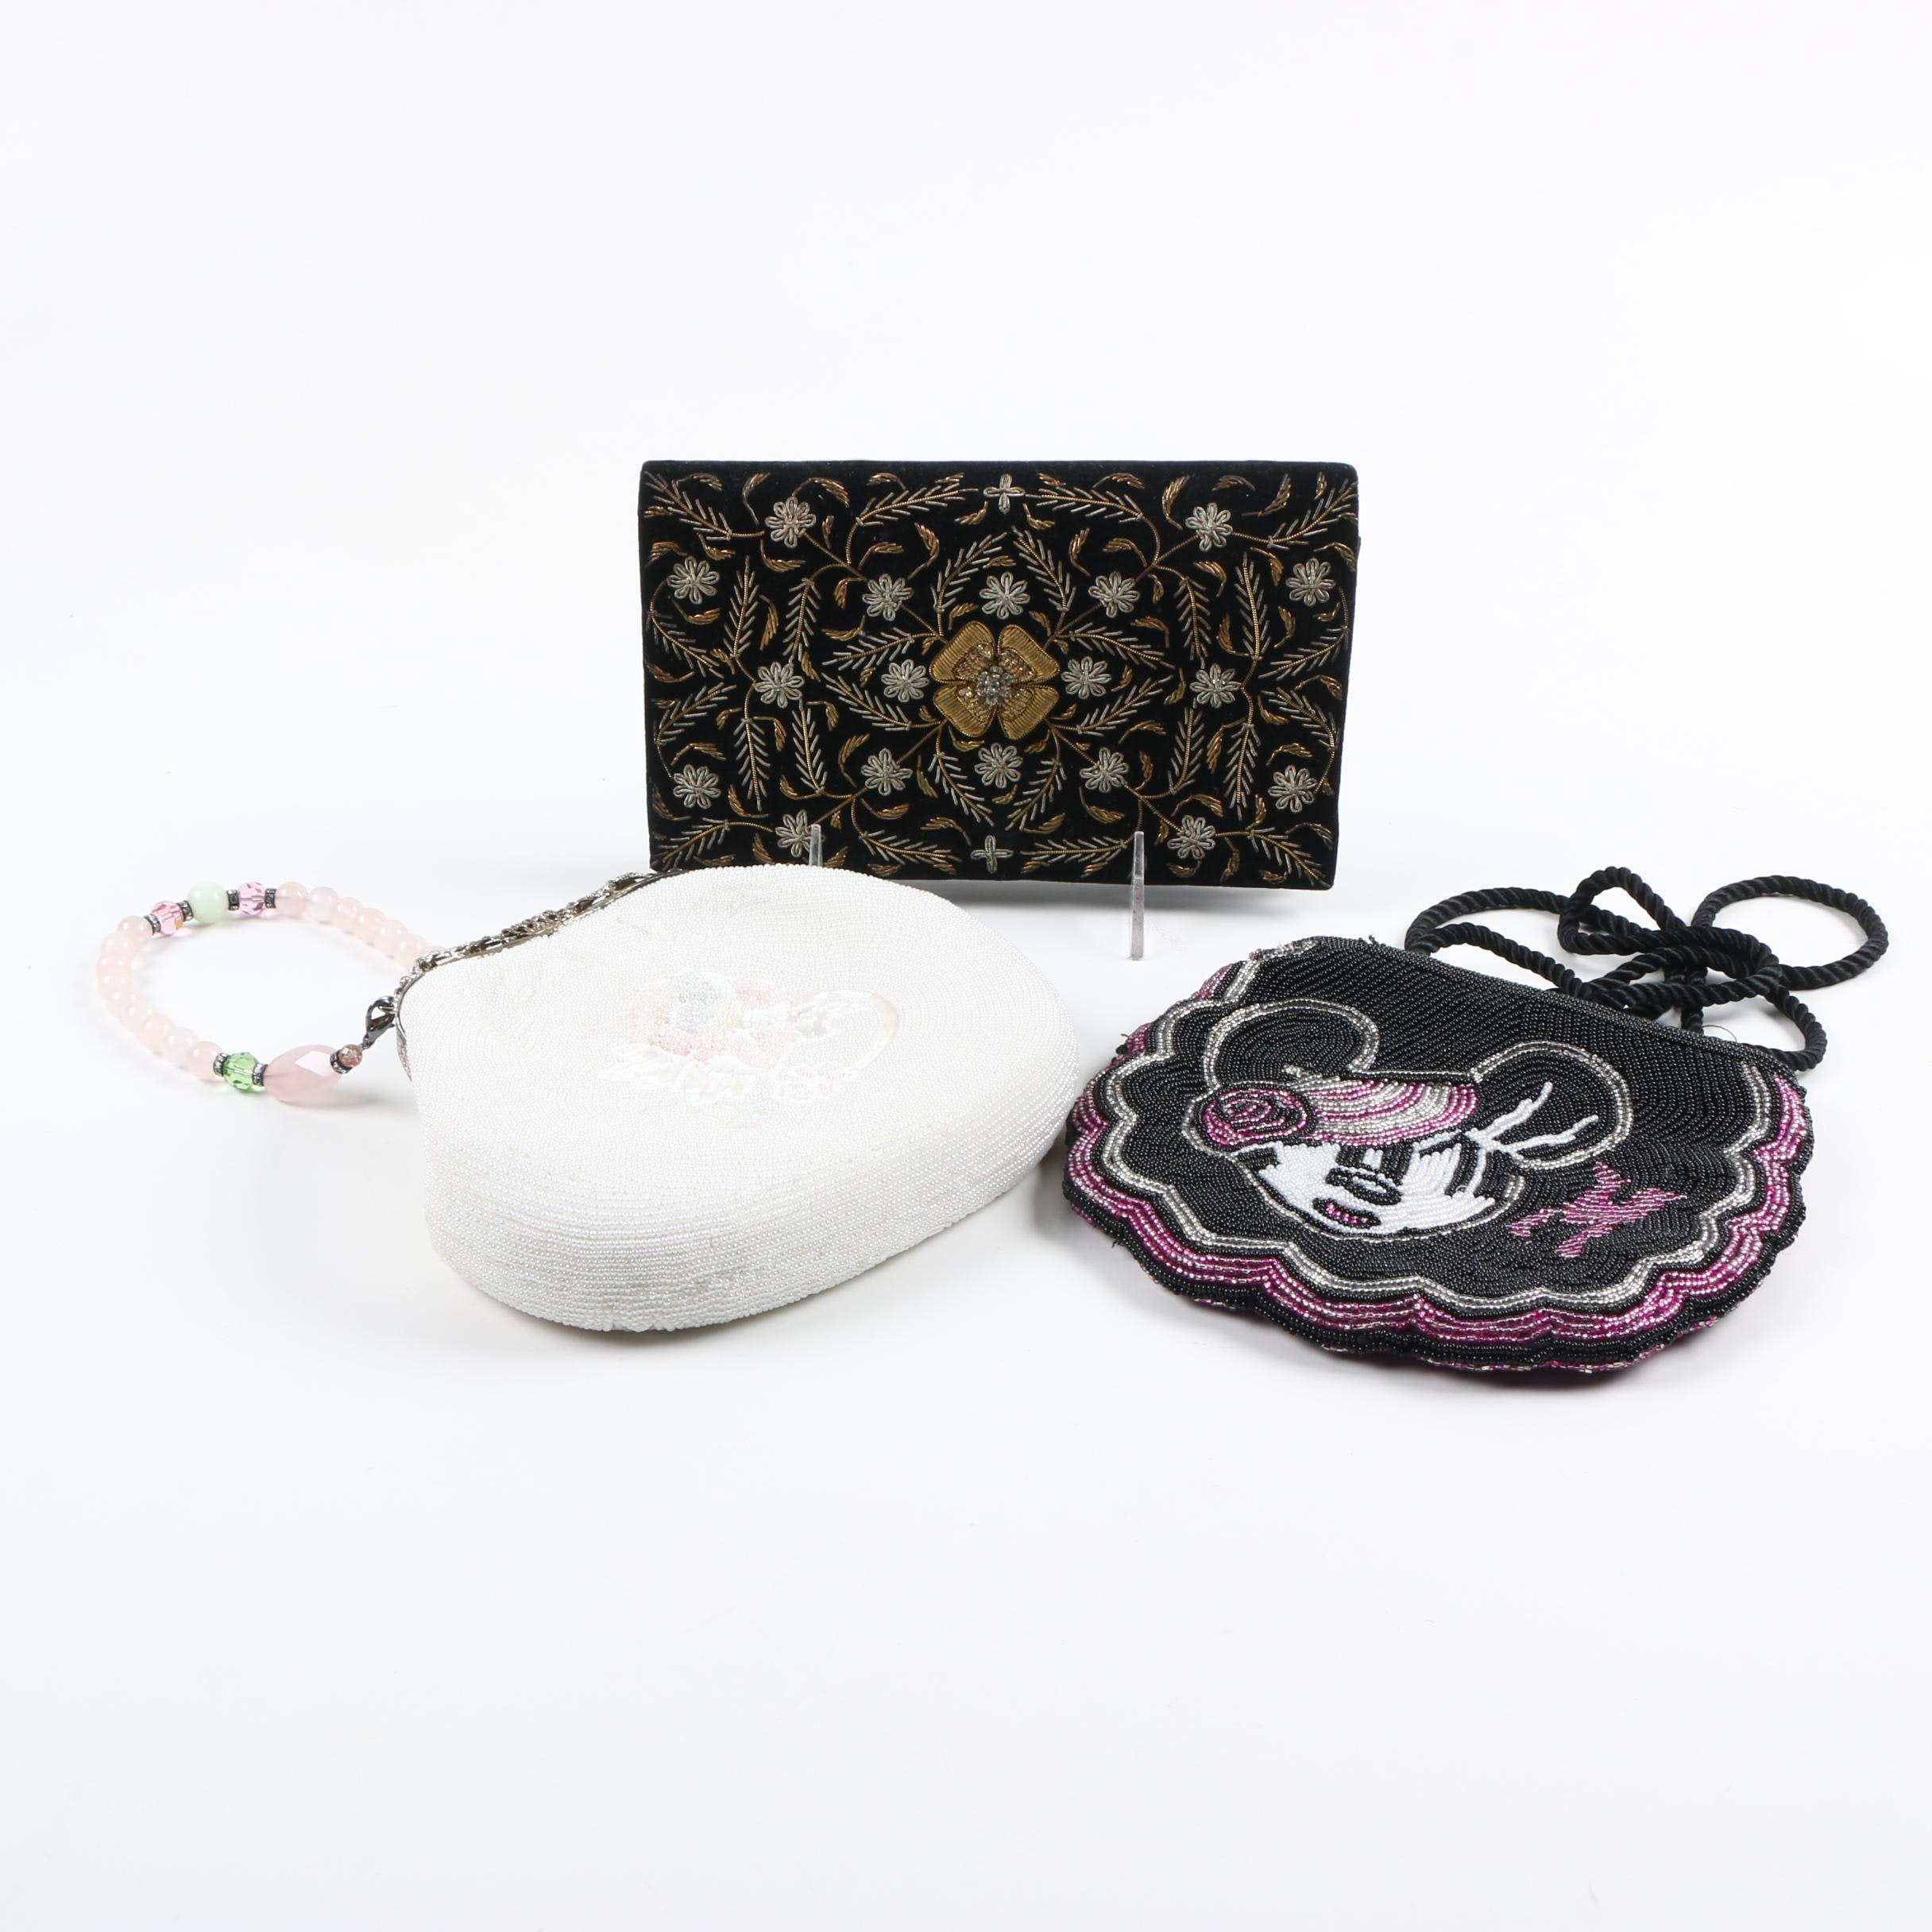 Embroidered and Beaded Evening Bags